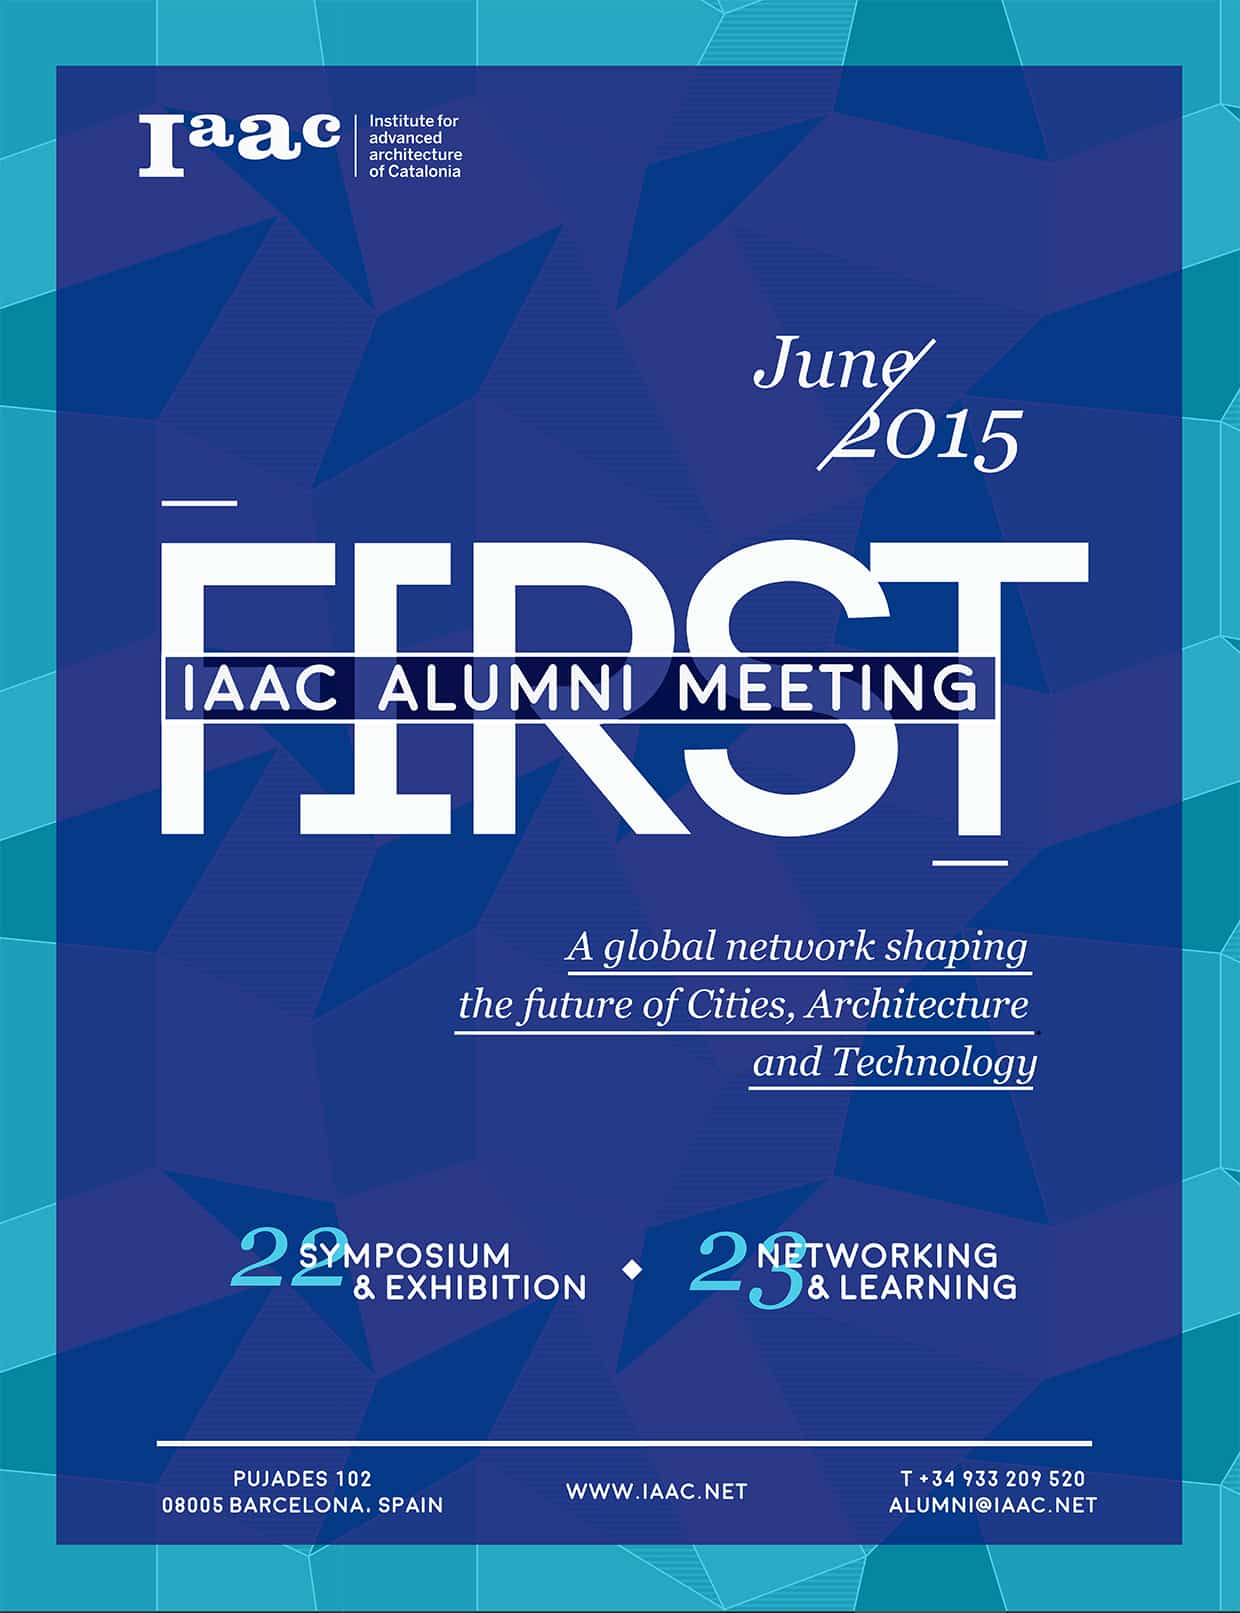 IAAC First Alumni Meeting